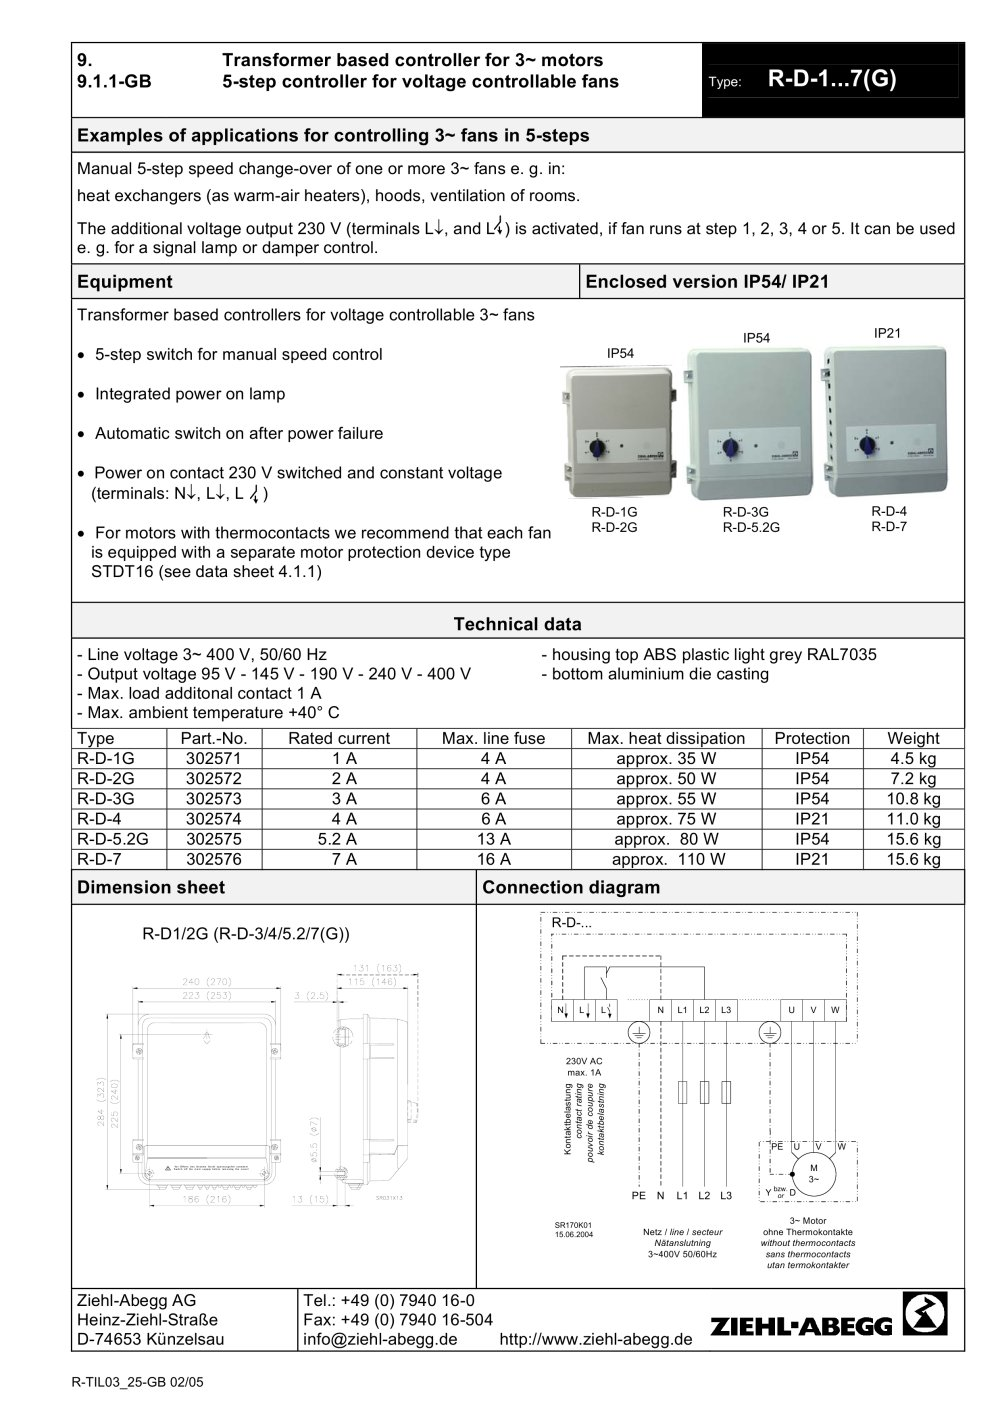 r d 17 171783_1b r d 1 7 ziehl abegg pdf catalogue technical documentation ziehl abegg wiring diagram at gsmx.co